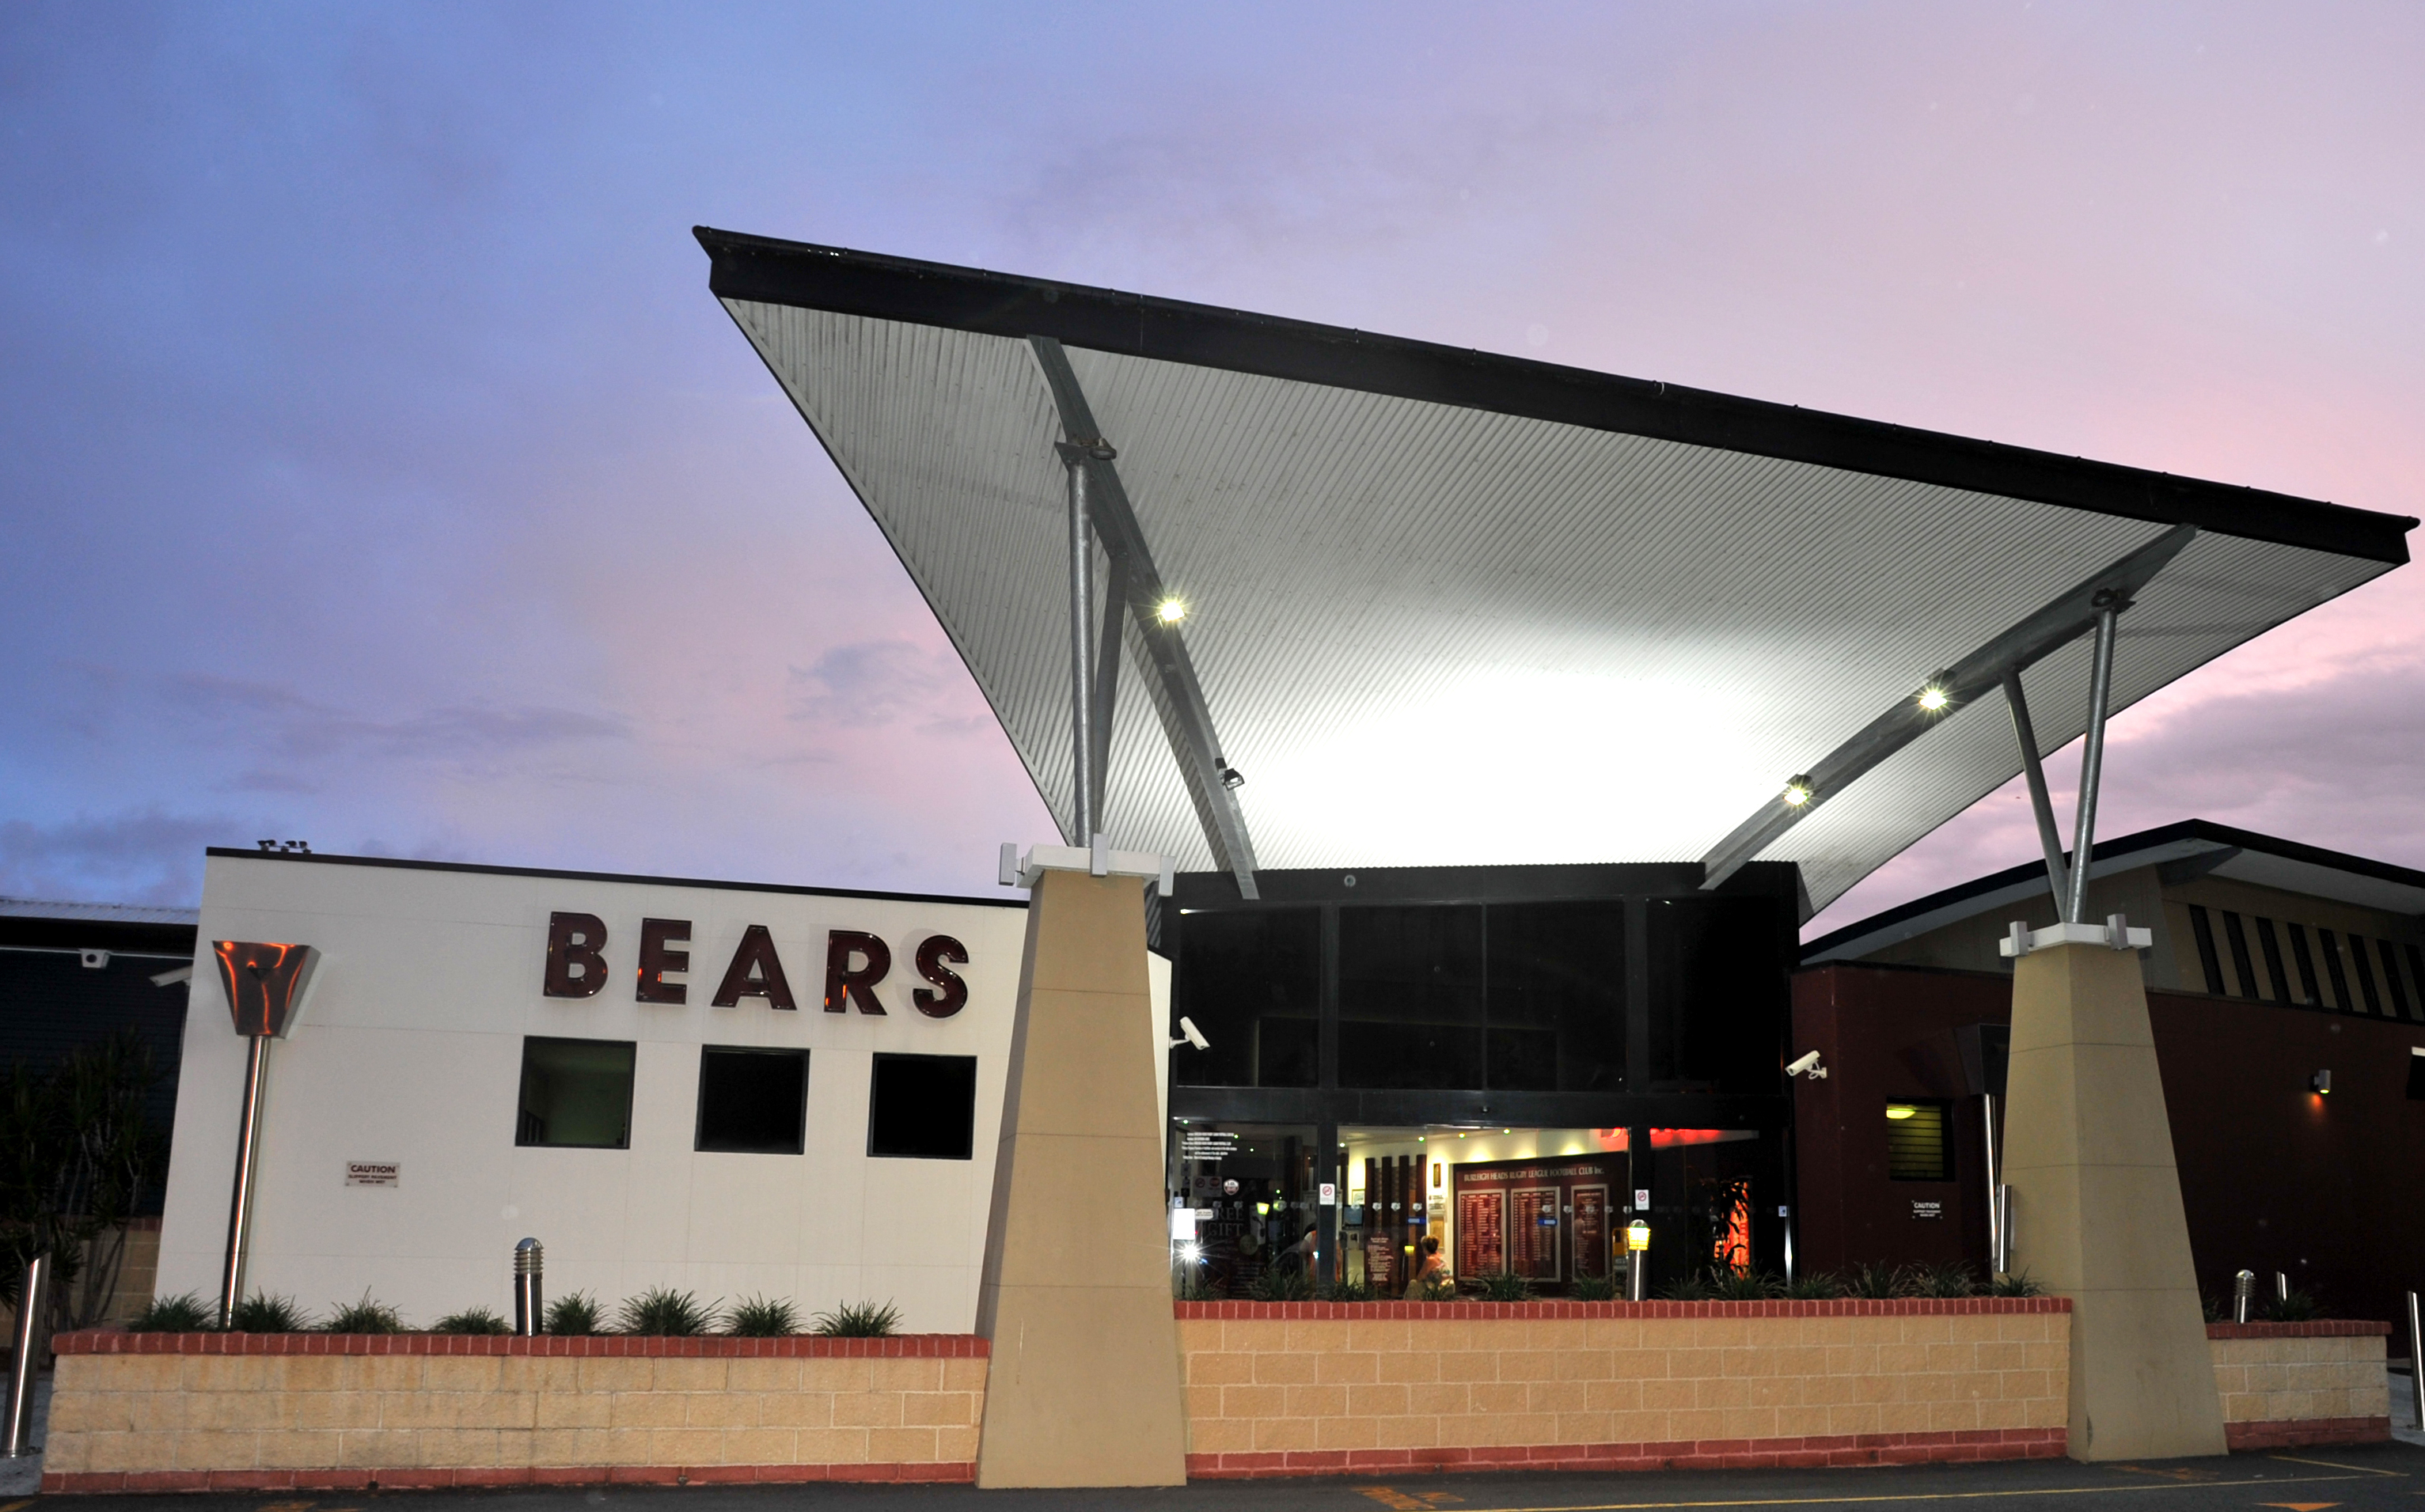 Burleigh Bears - Restaurant Find